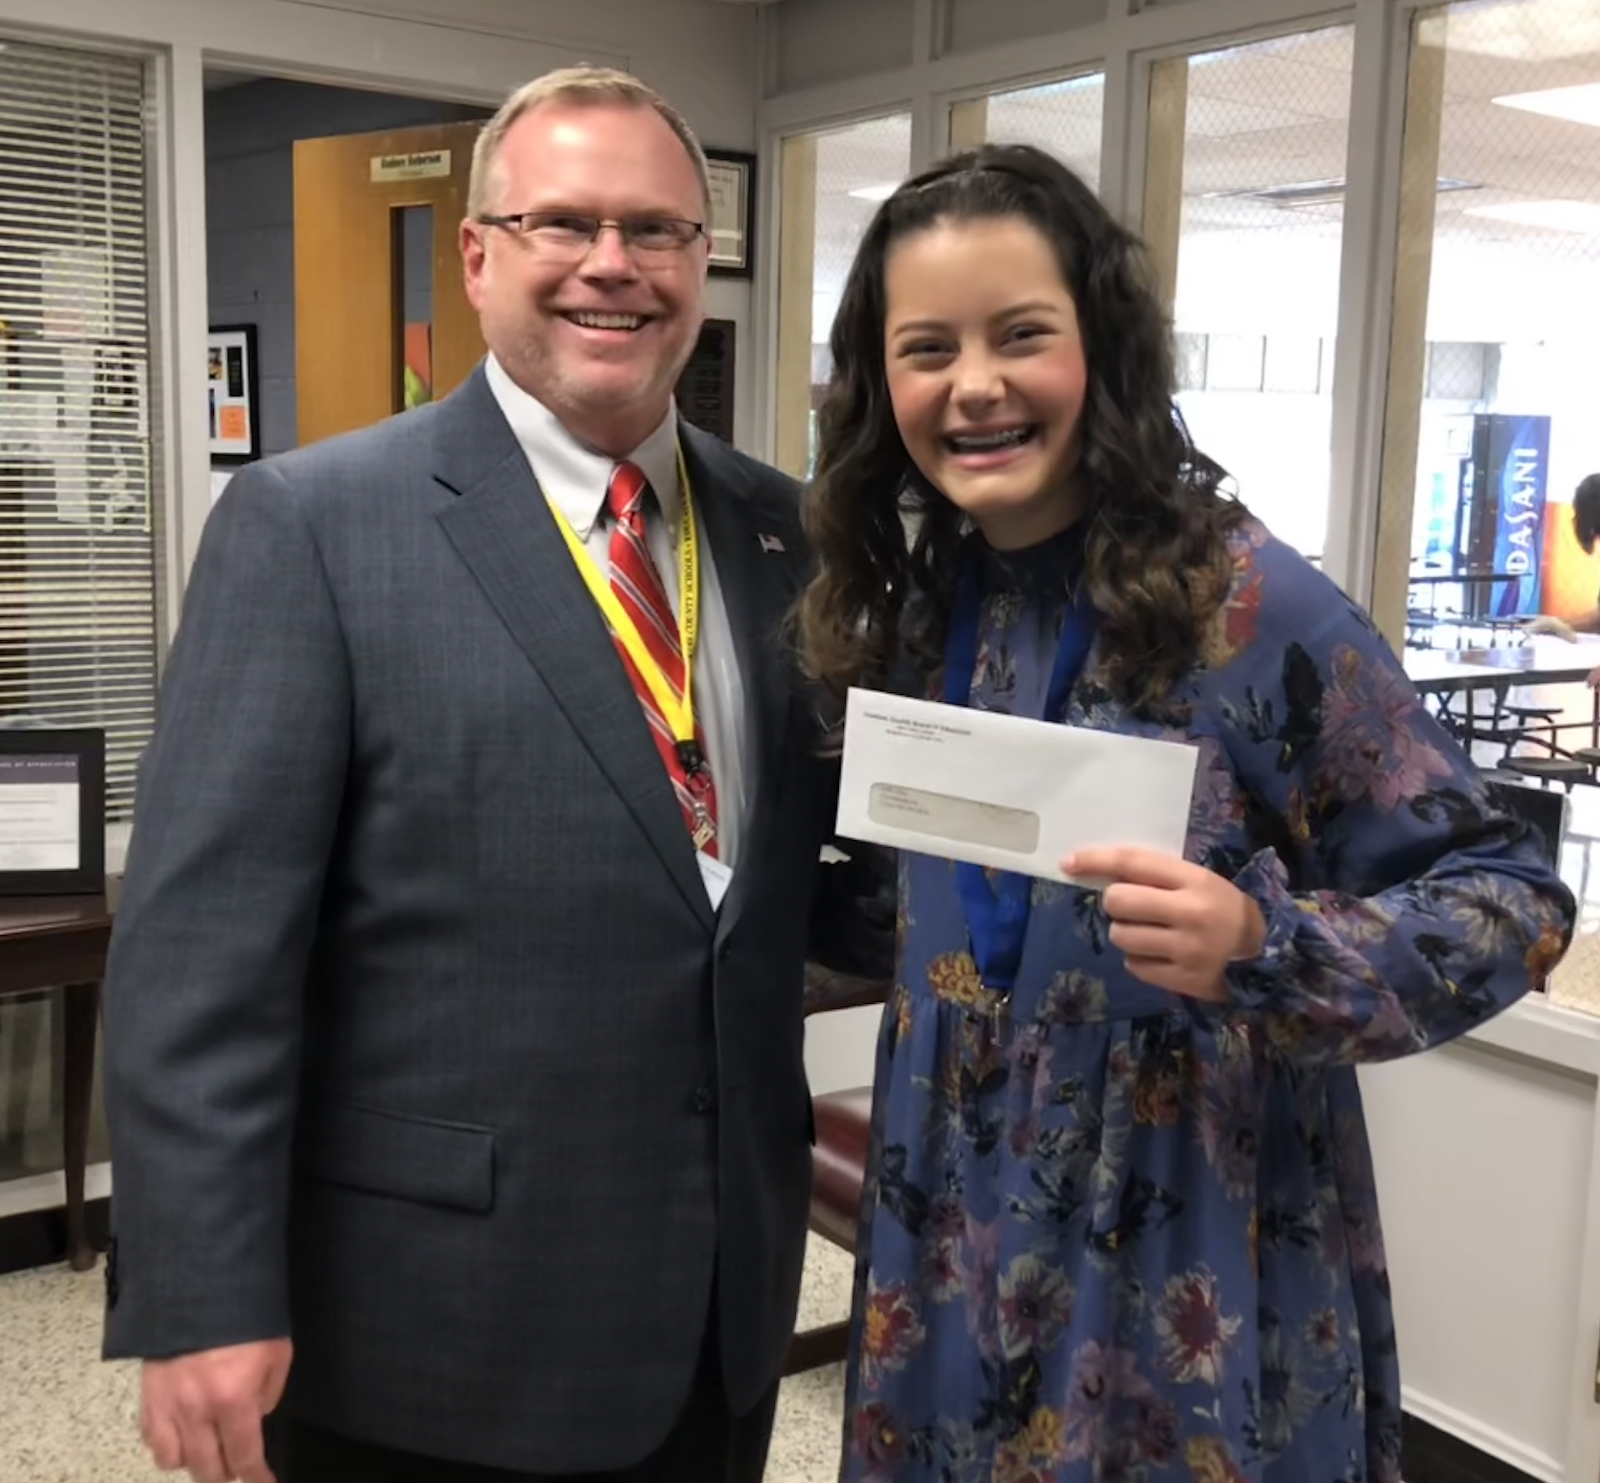 Attendance Awareness Month essay contest winner Eliza Smith